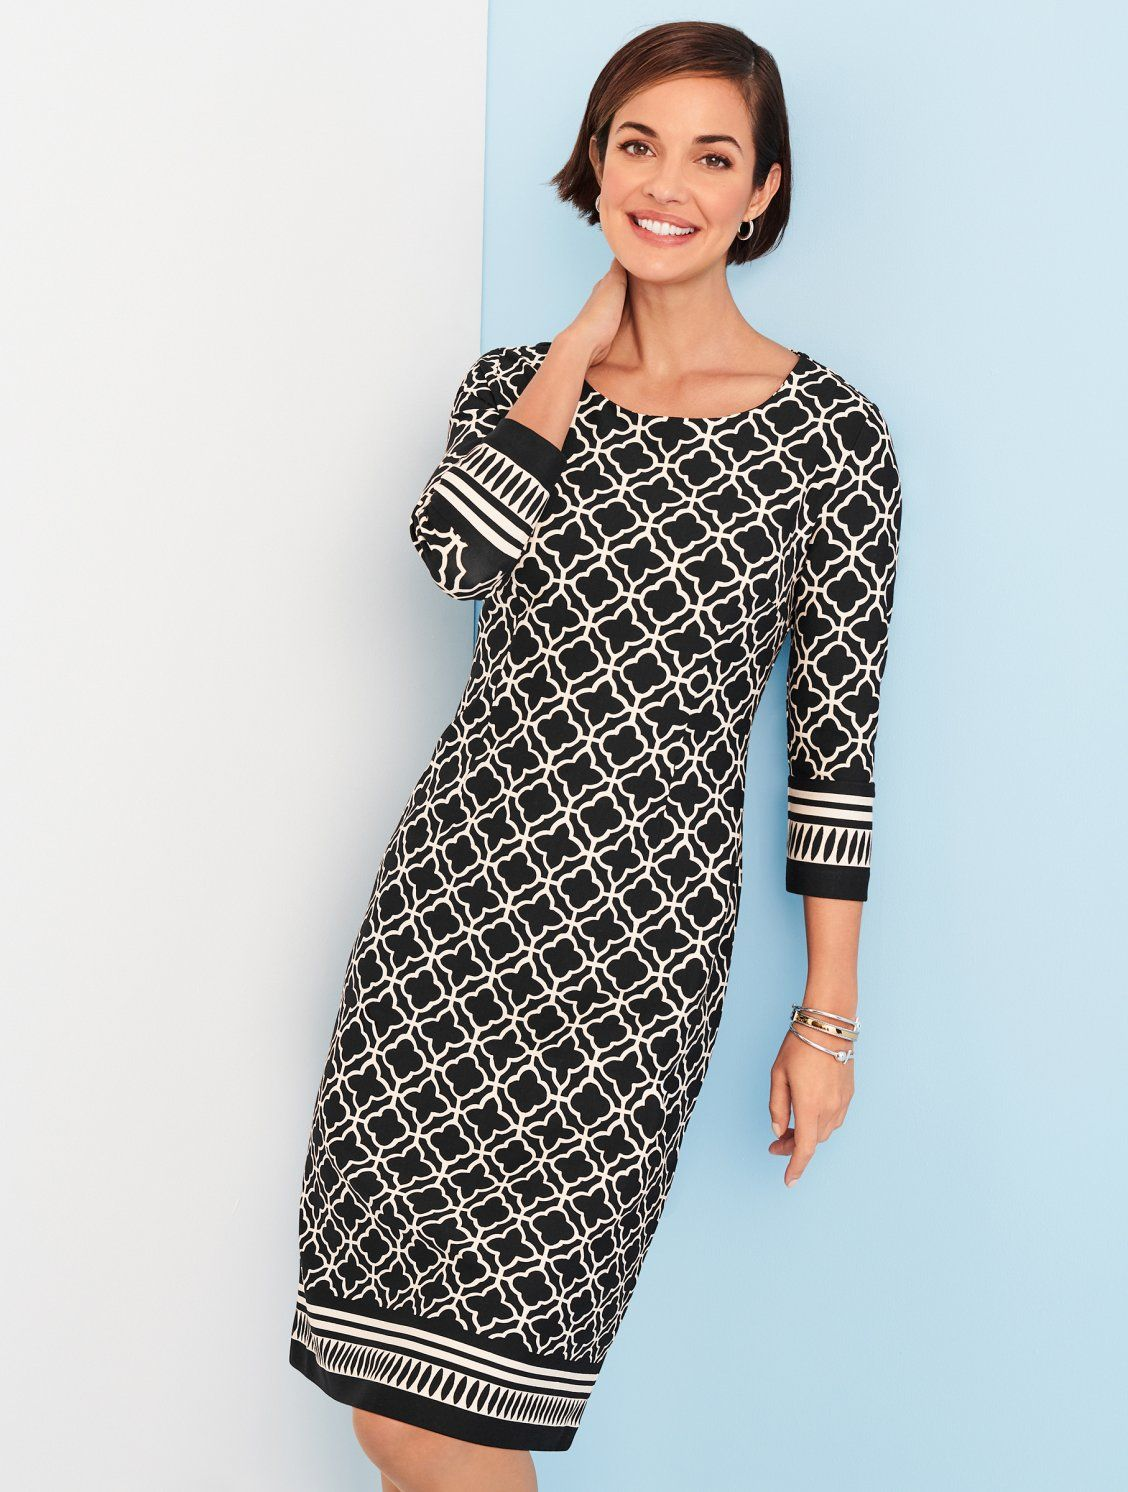 d93b94b0 An easy-to-wear sheath dress with an interesting geometric print is perfect  for days at the office, nights out, book clubs, and everything in between.